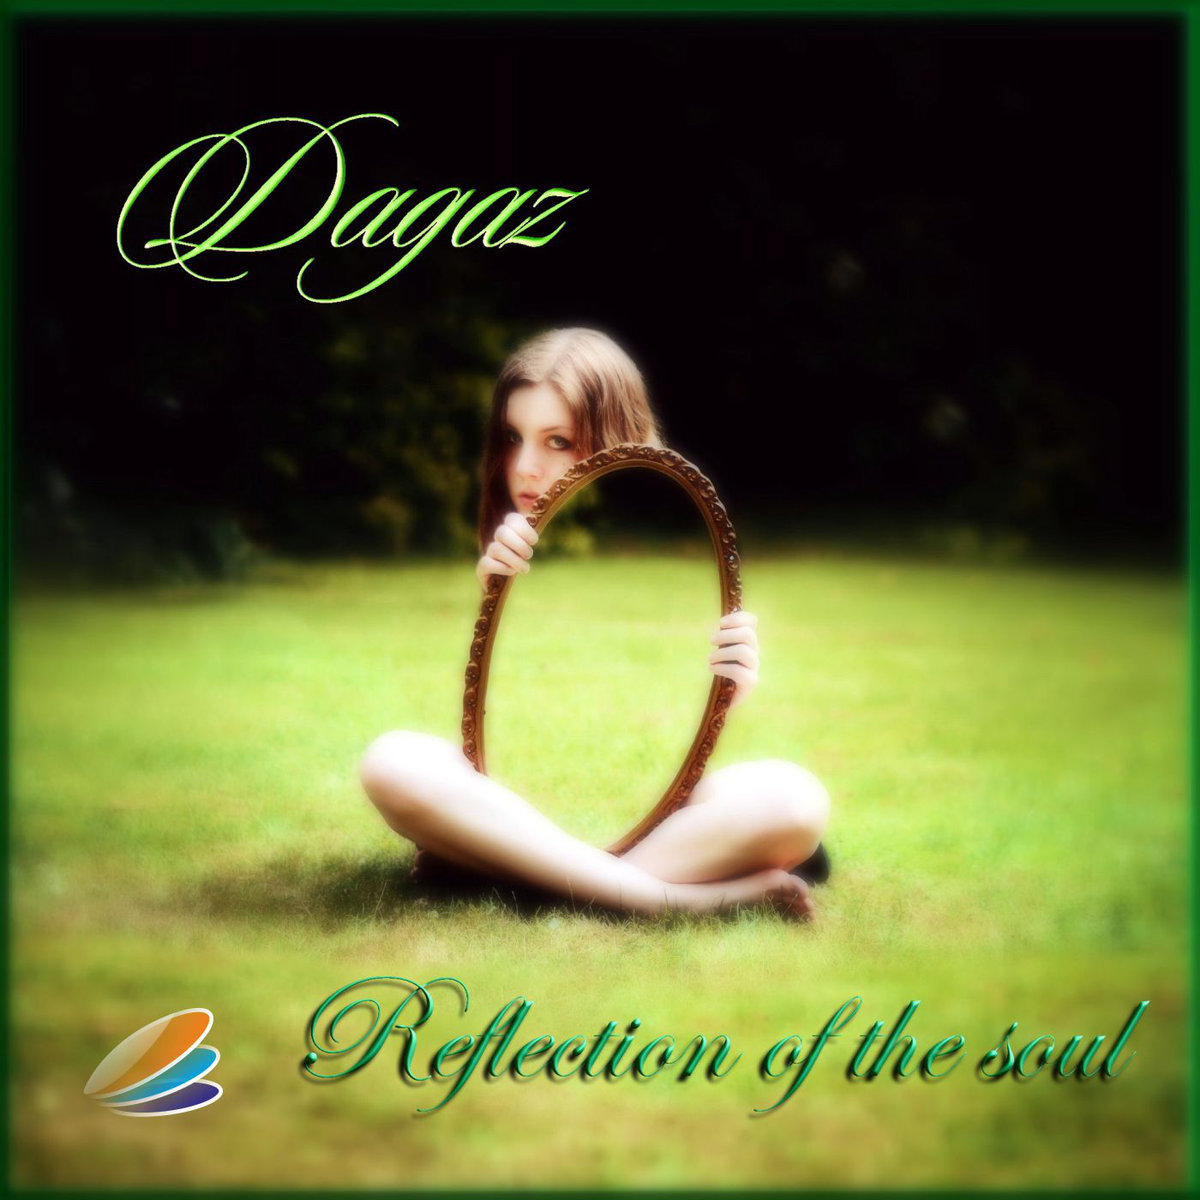 Dagaz - Reflection Of The Soul